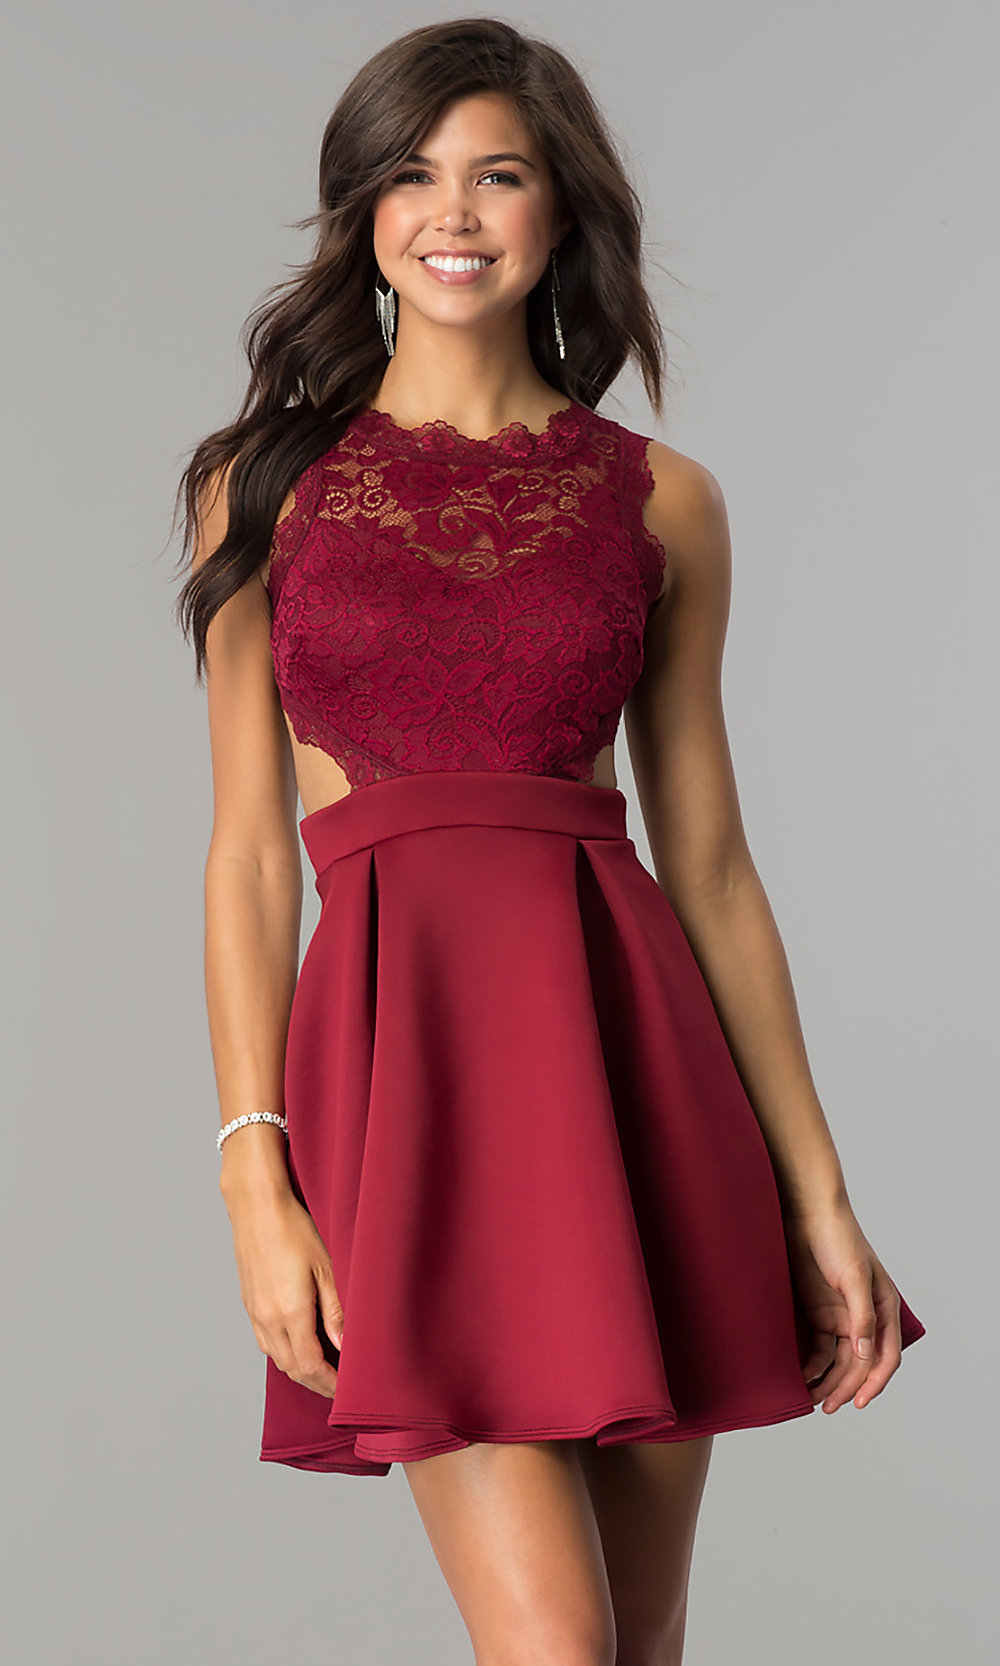 What color shoes do I wear with a Maroon dress? - Quora  Maroon Dress